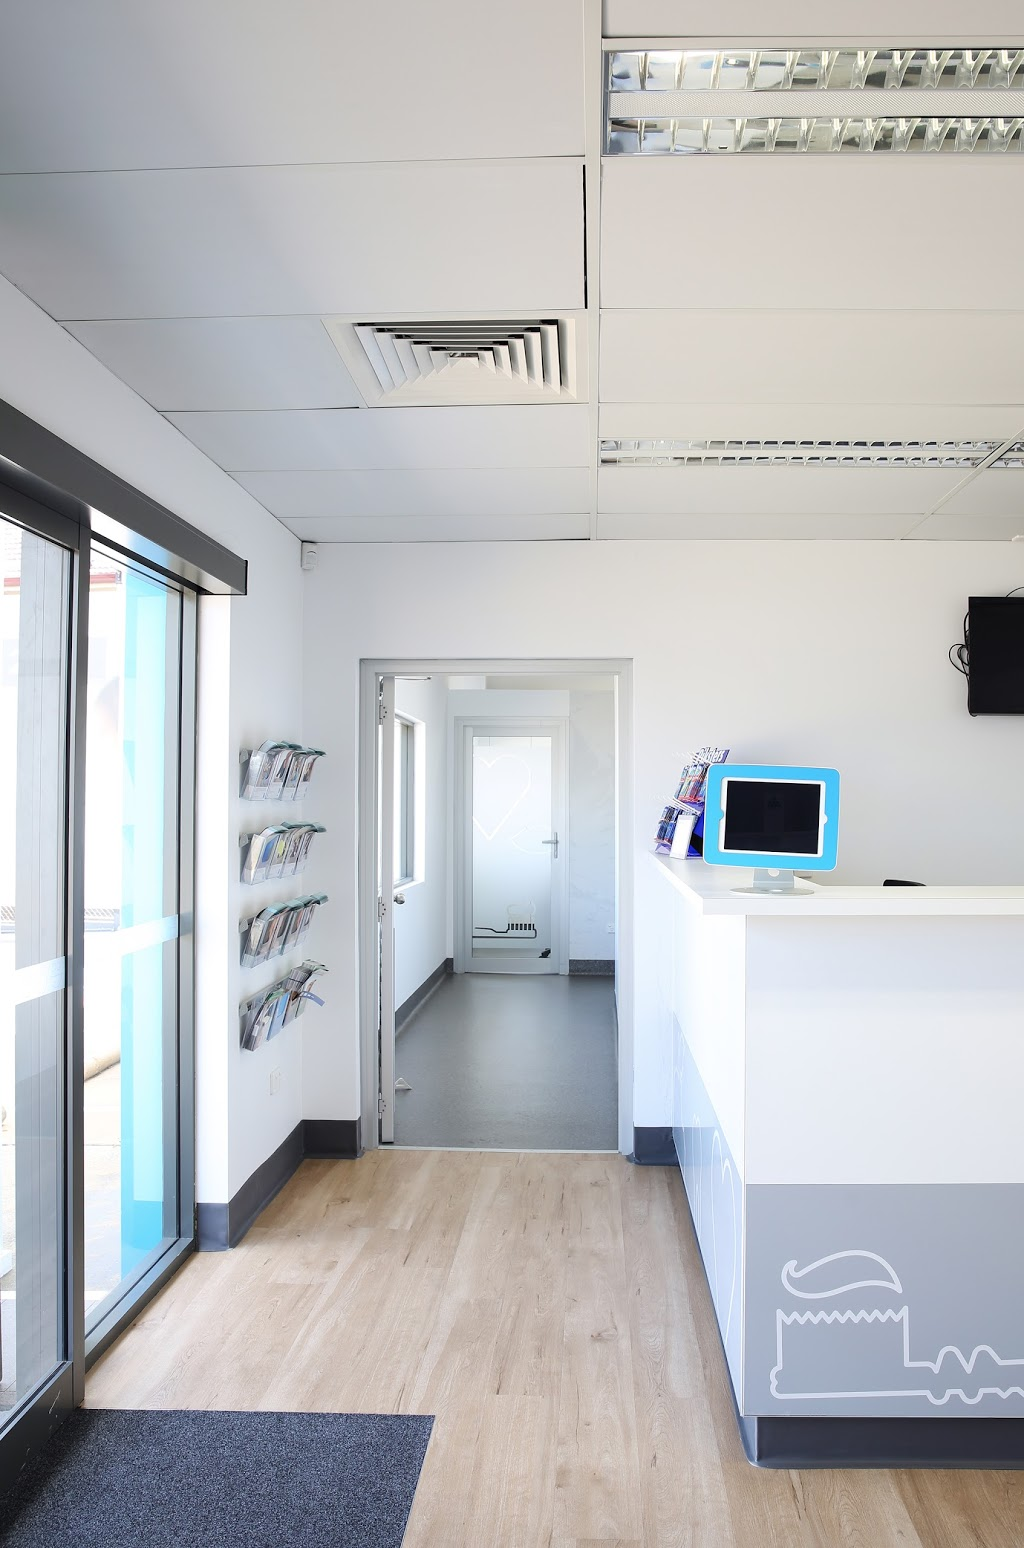 Bupa Dental Five Dock | dentist | 277 Parramatta Road Corner of, Taylor St, Five Dock NSW 2046, Australia | 0287412100 OR +61 2 8741 2100